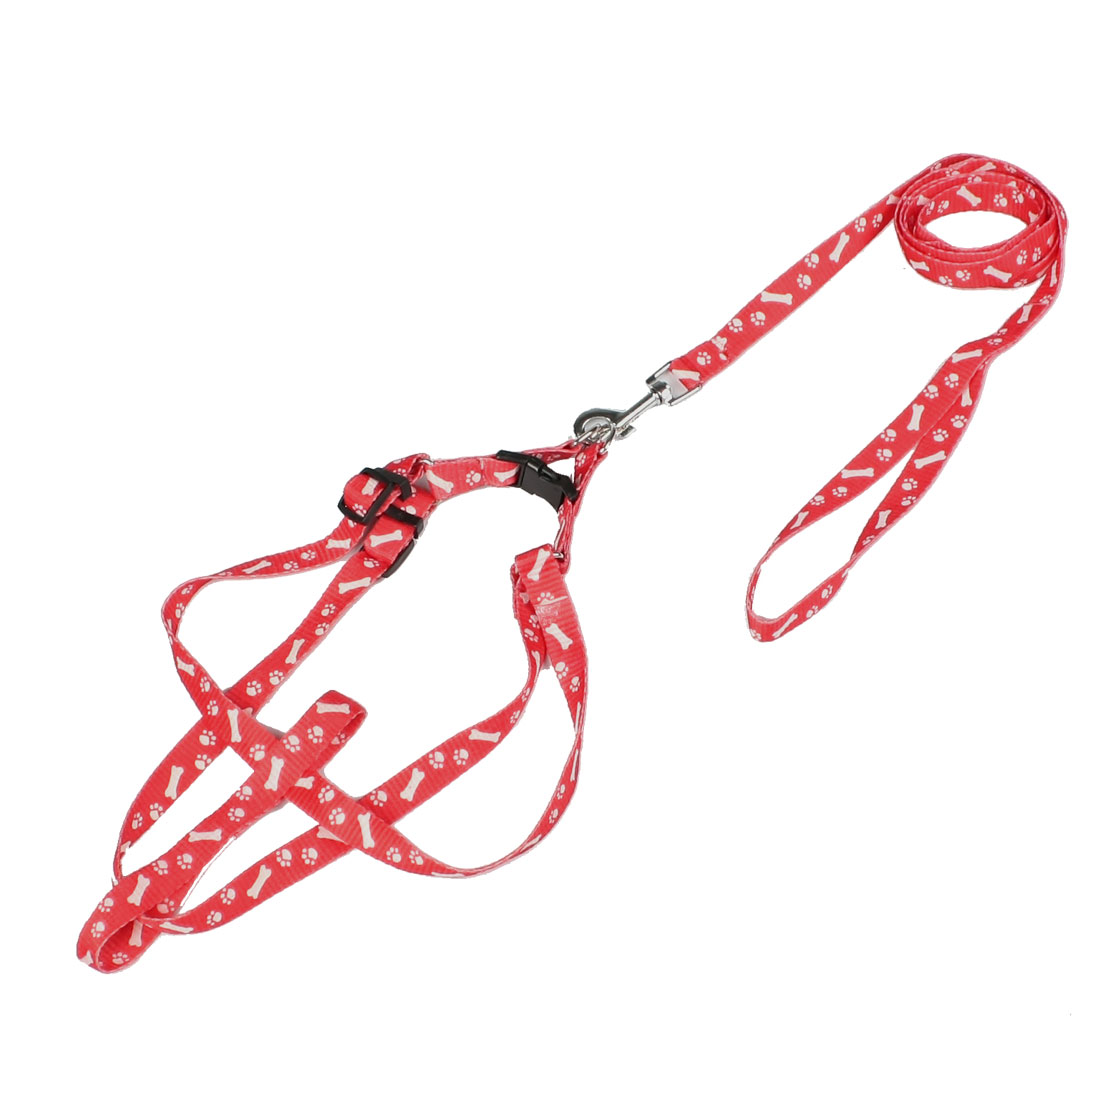 White Bone Paw Printed Red Nylon Medium Size Dog Pet Harness Leash